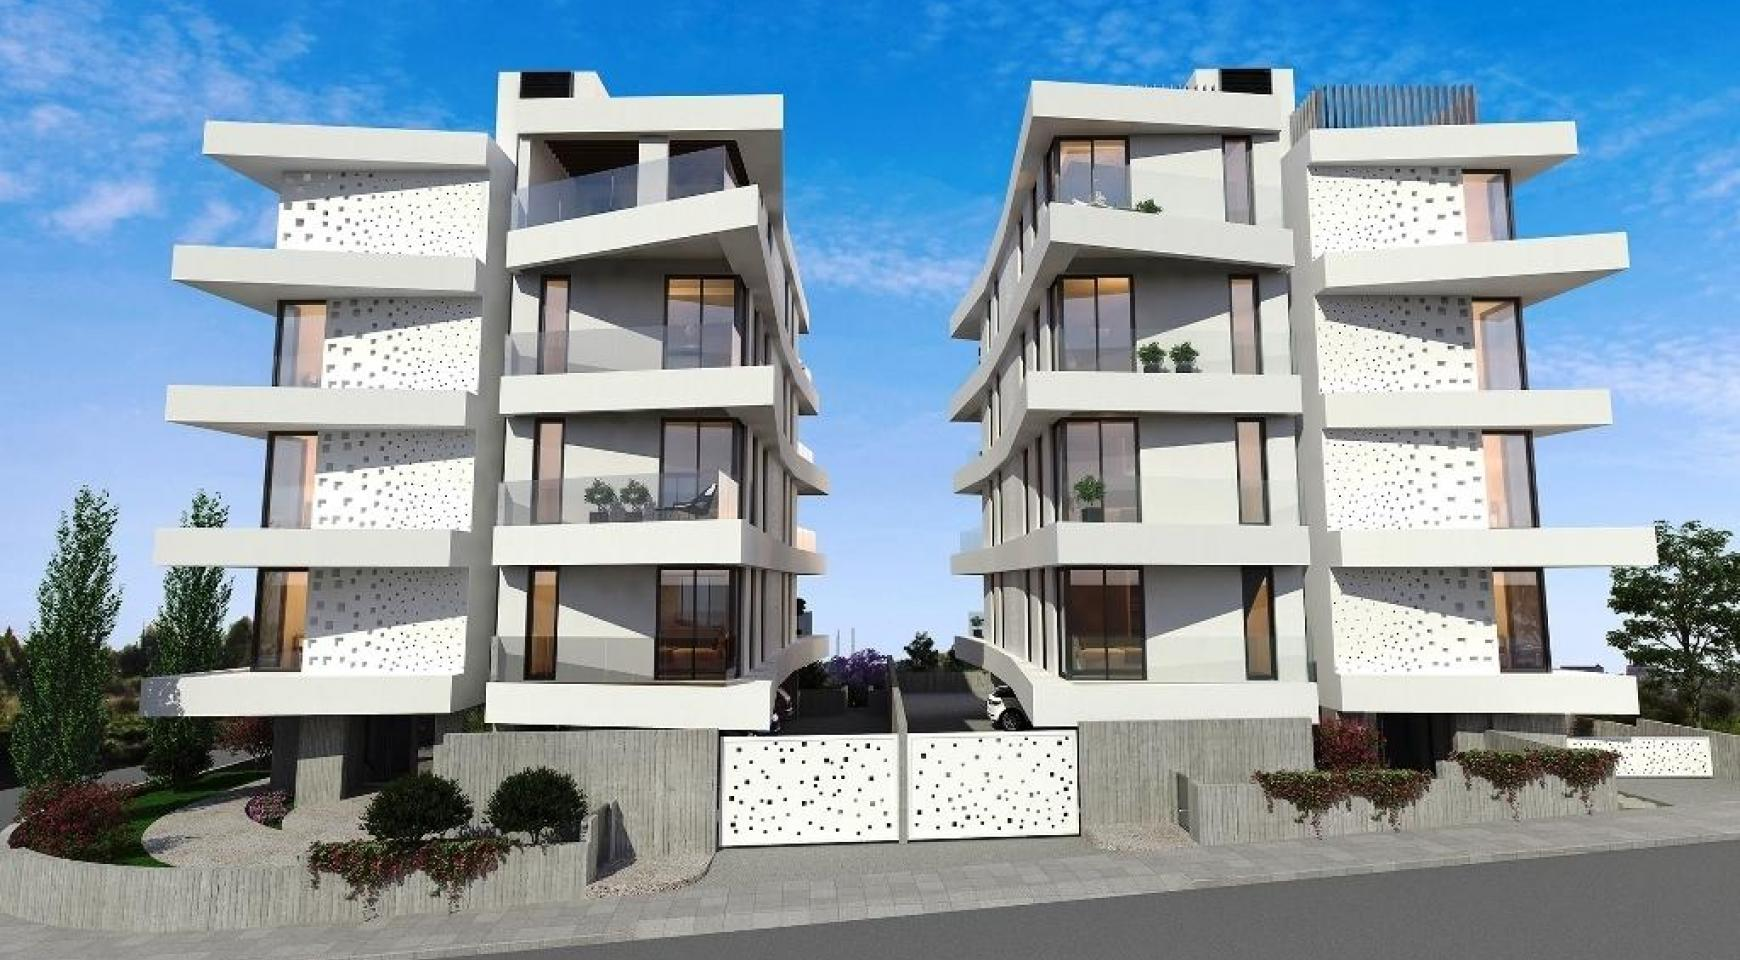 New 2 Bedroom Apartment in a Contemporary Building in Germasogeia Area - 7